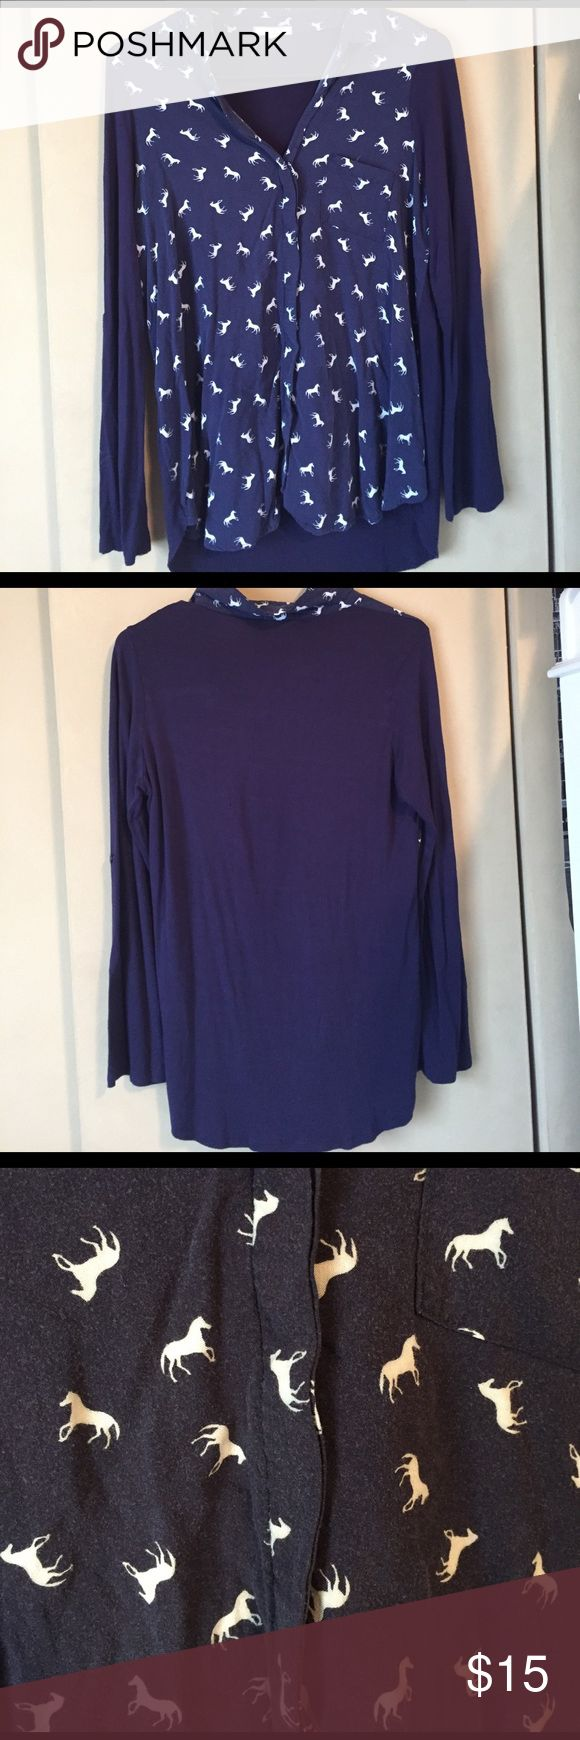 Pleione Blue long sleeve top Blue long sleeved top with white horse print on the front Pleione Tops Tees - Long Sleeve